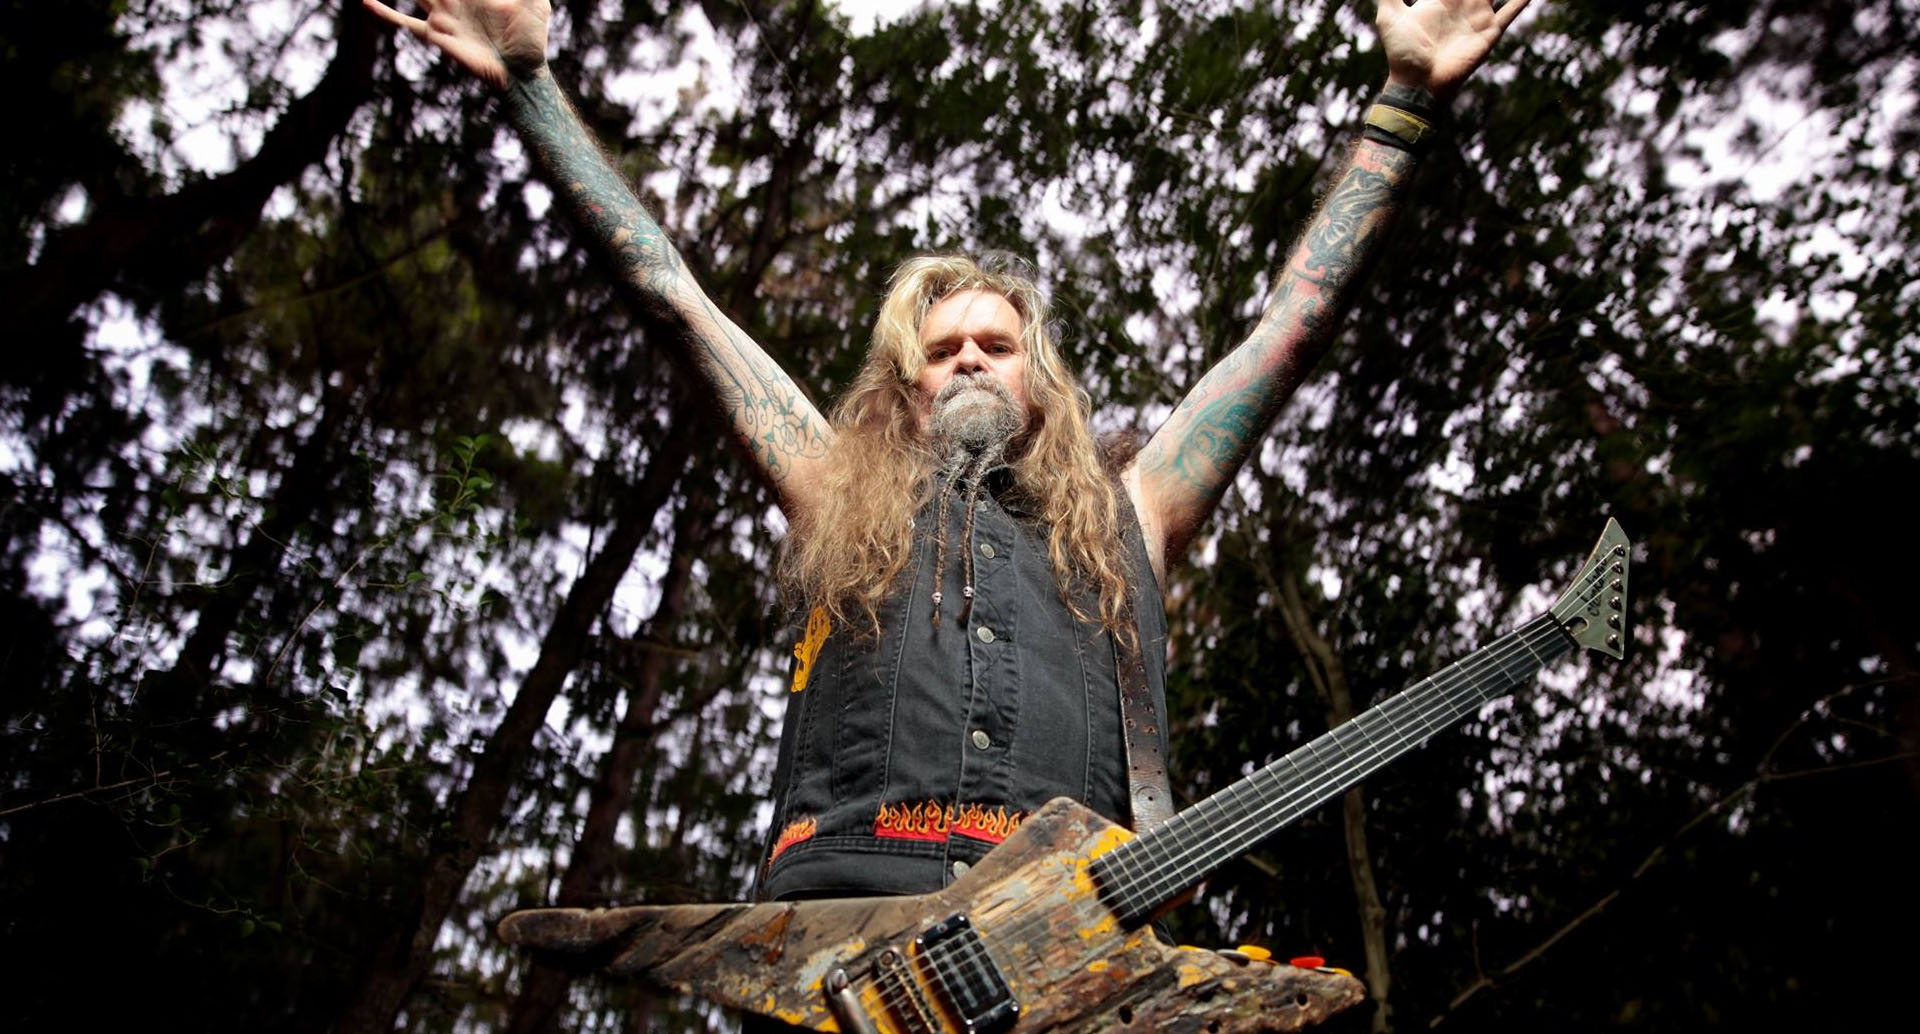 Chris Holmes first live show in Singapore! – Postpone to December